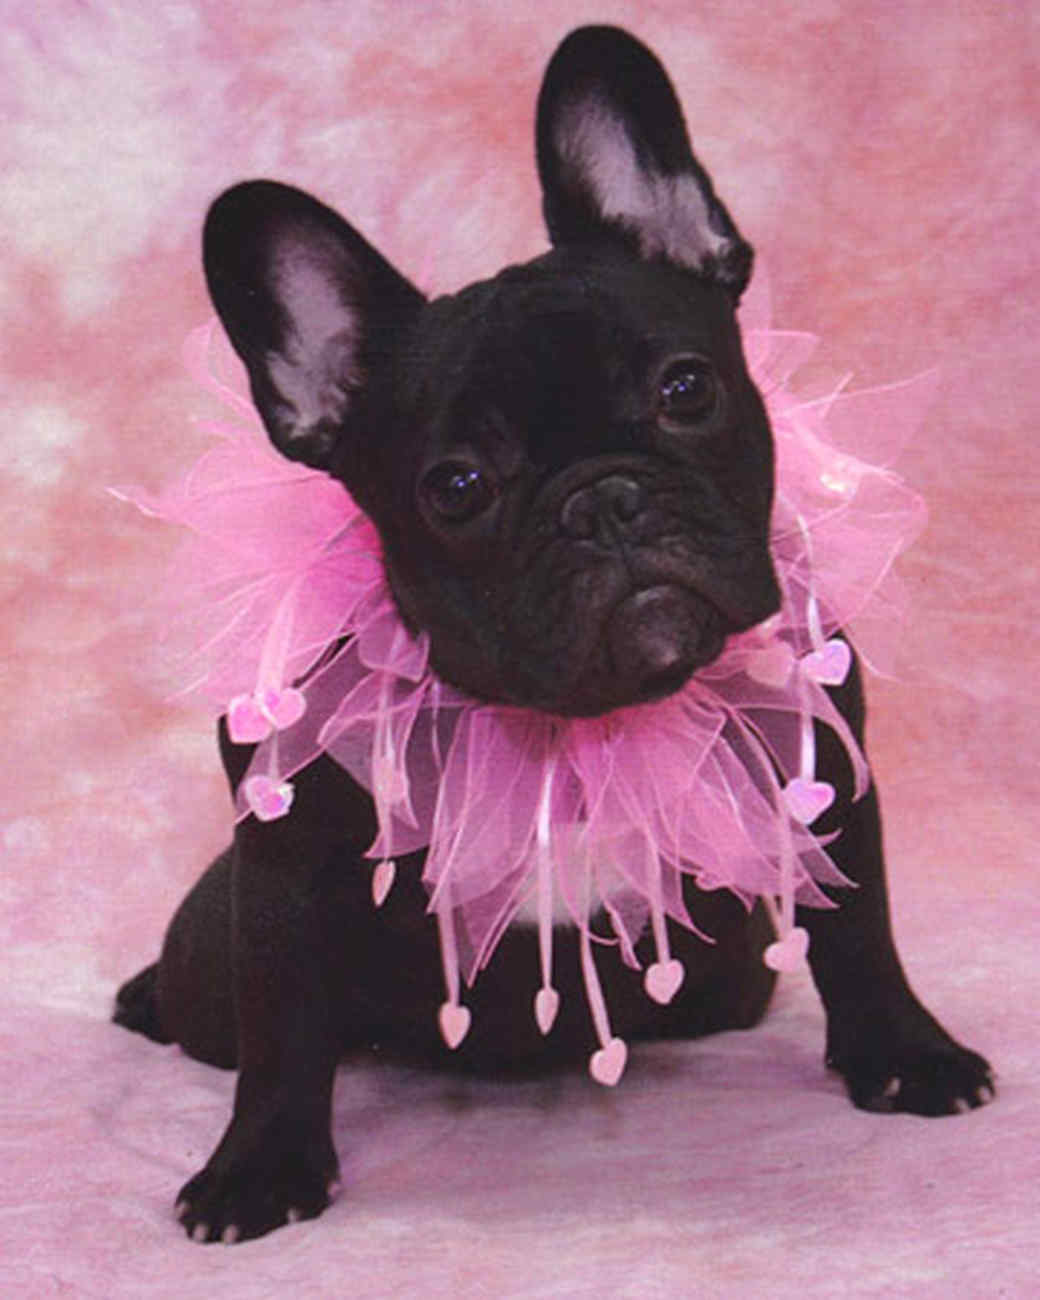 pets_frenchies_ori00084439.jpg